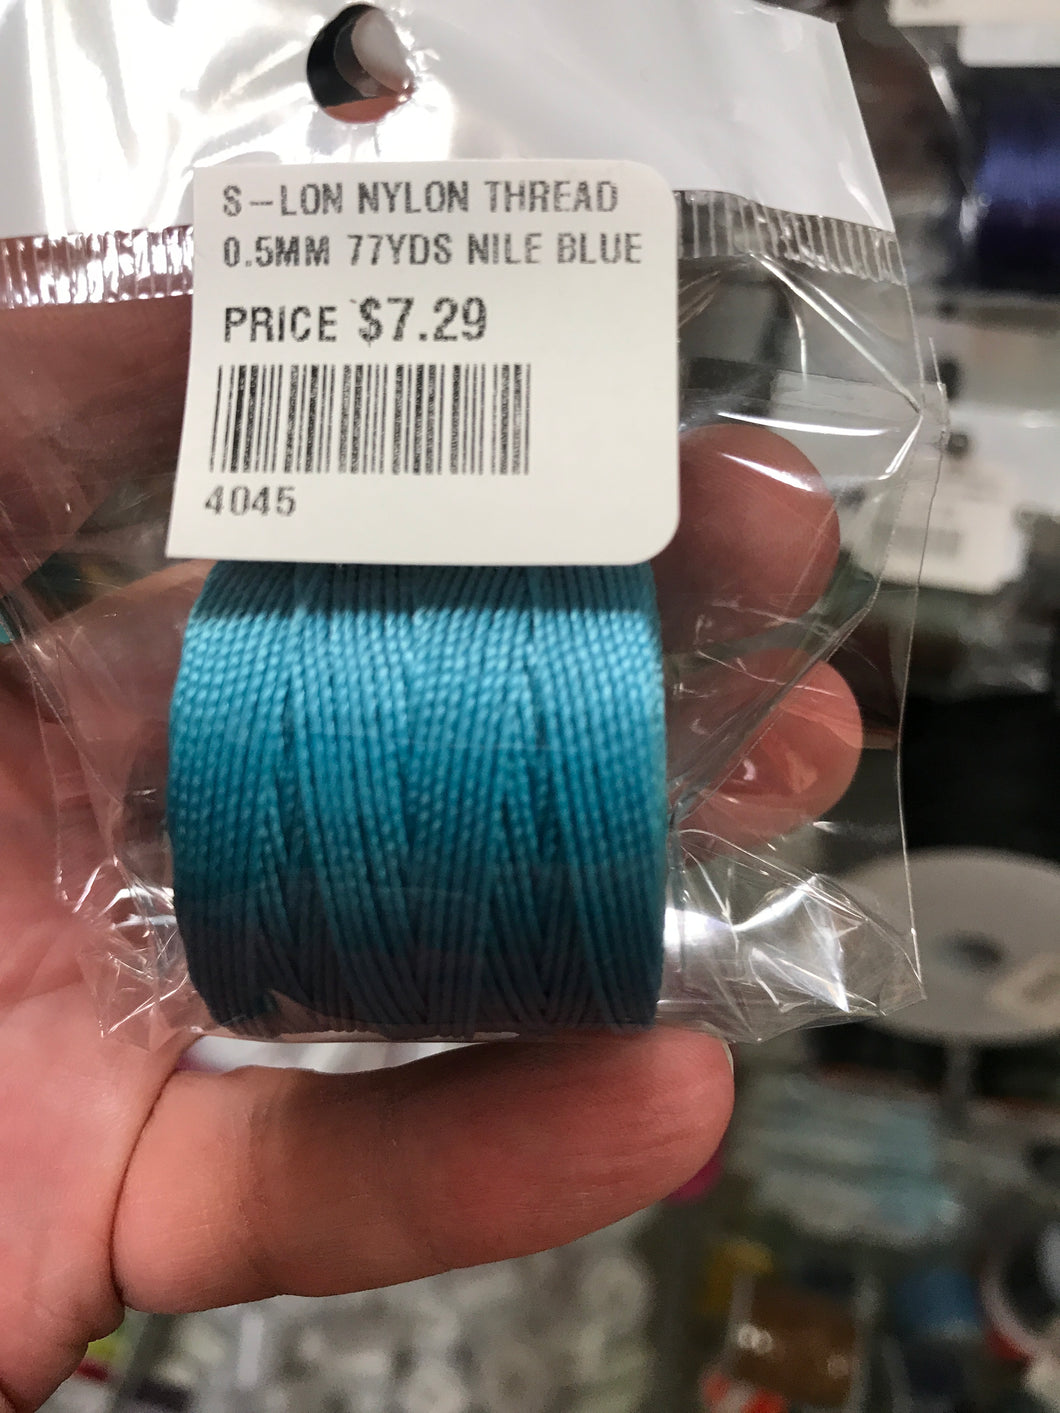 S-LON NYLON THREAD 0.5MM 77YDS NILE BLUE